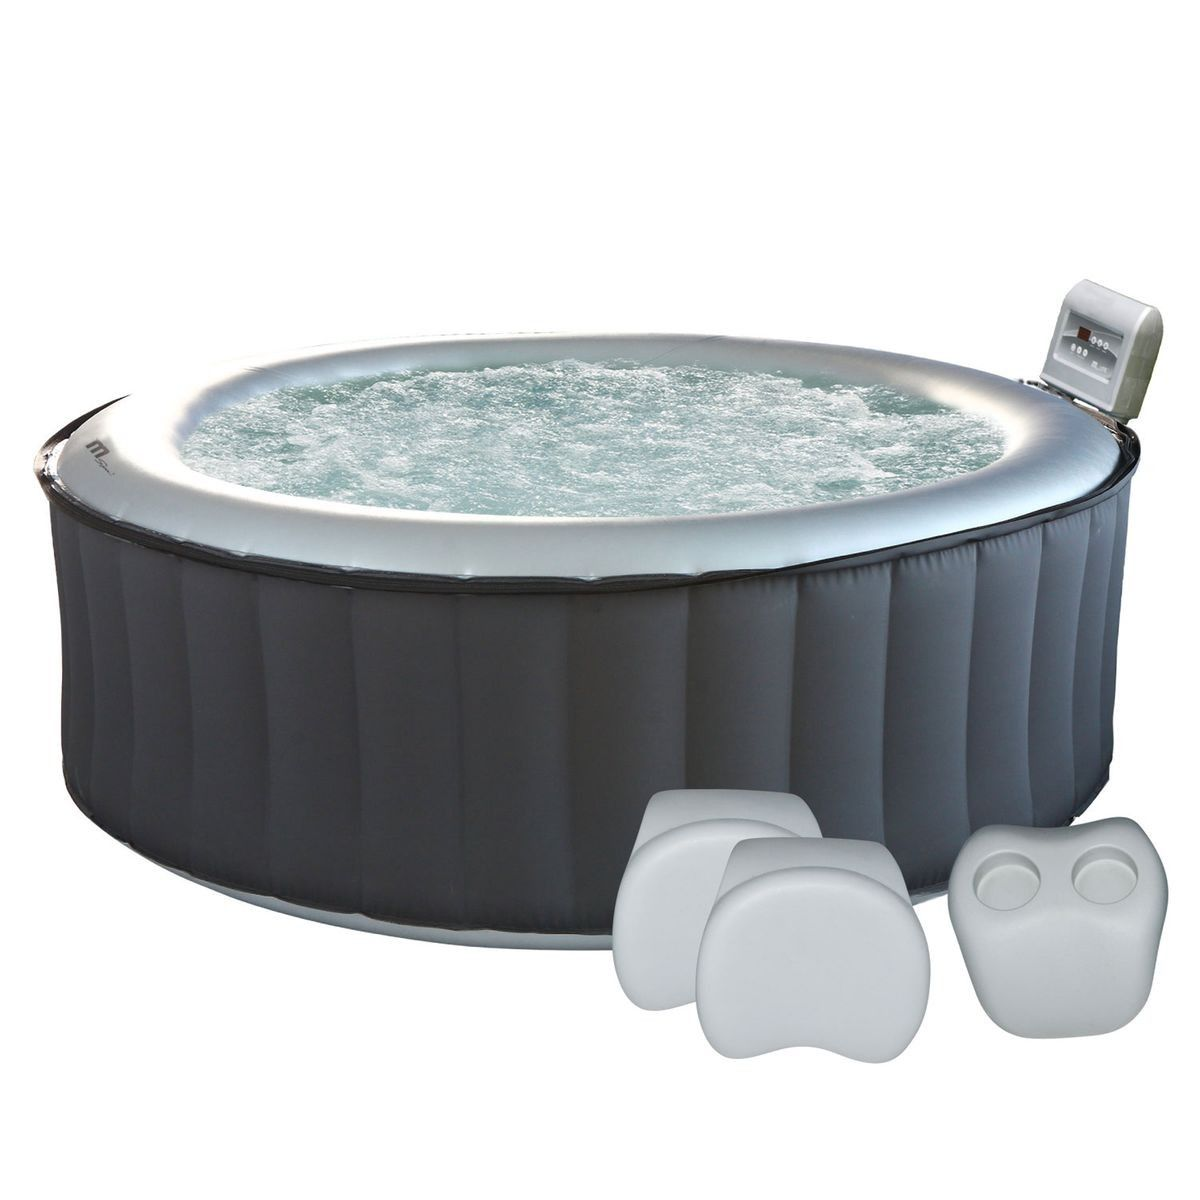 Pack Spa Gonflable Rond O205cm Silver Cloud 6 Places Taille Taille Unique Spa Gonflable Gonflable Et Jacuzzi Gonflable